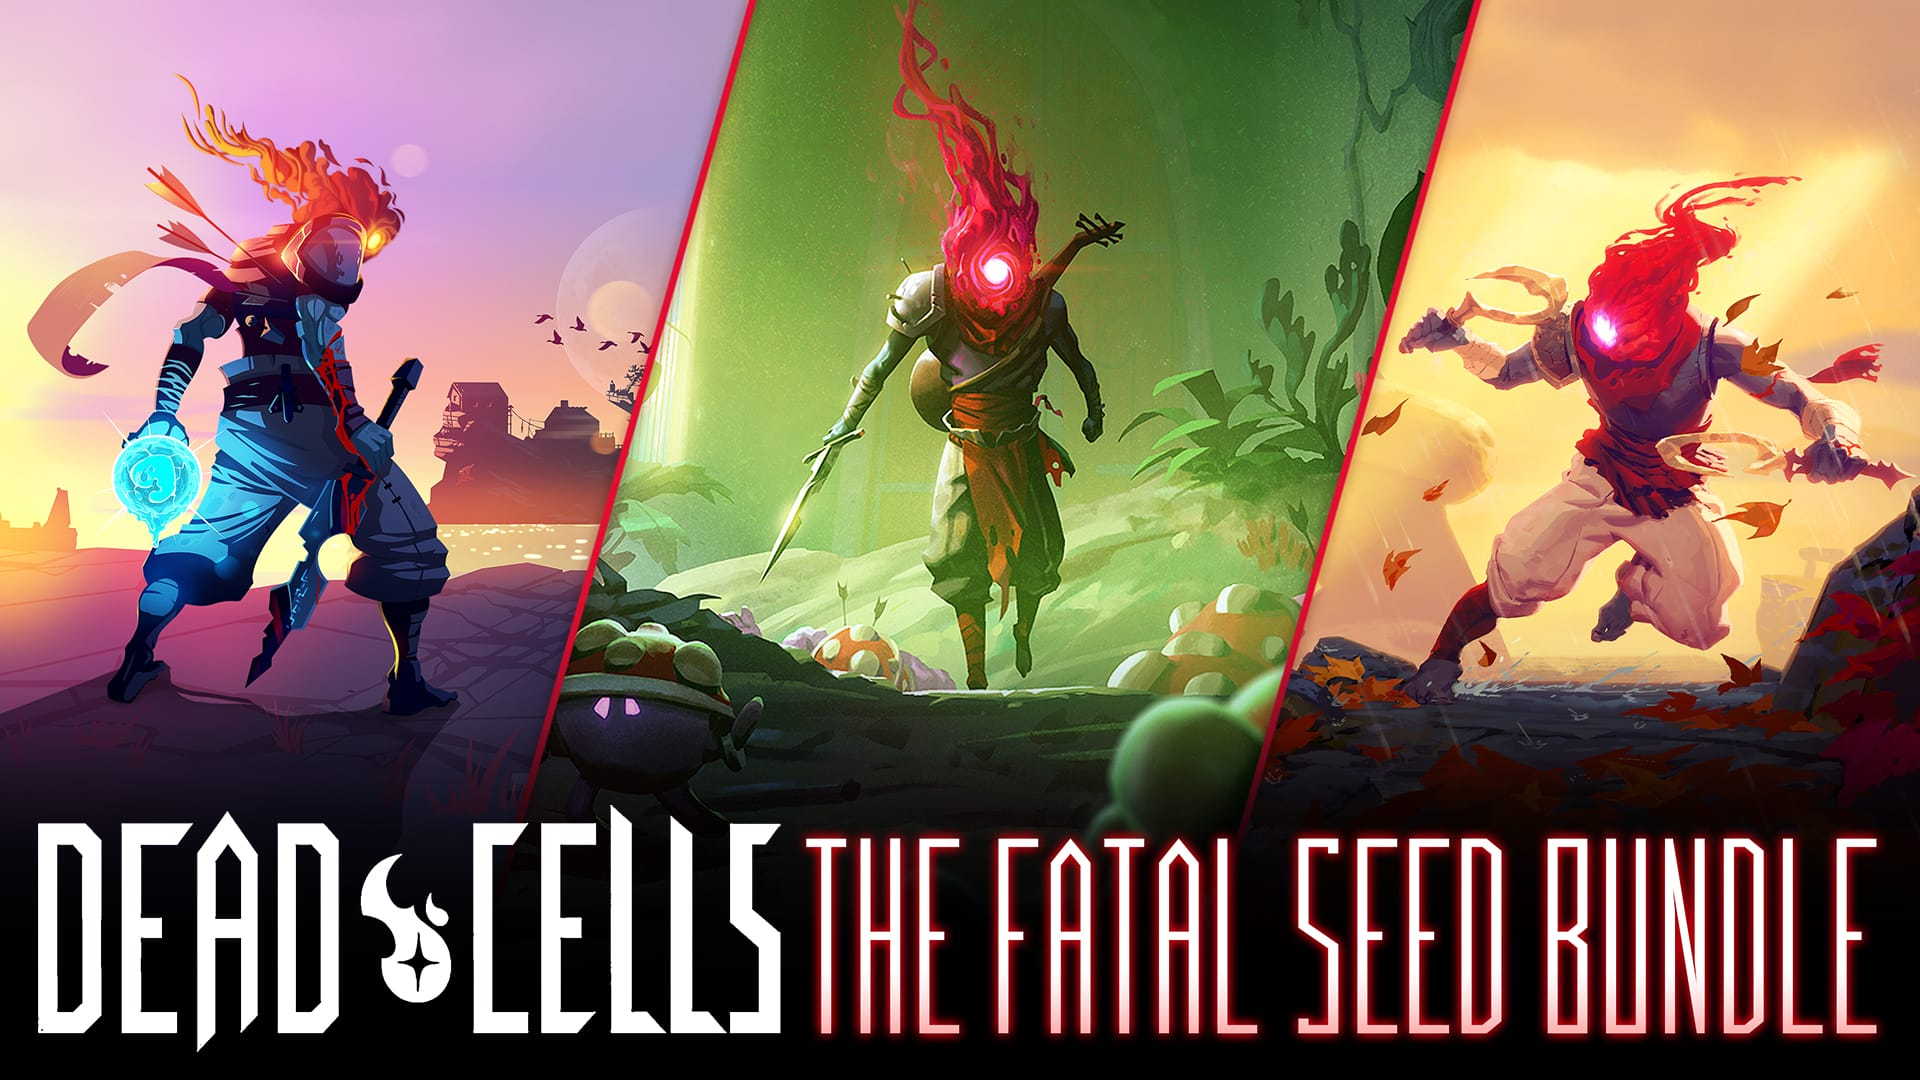 Dead Cells: The Fatal Seed Bundle for the Nintendo Switch (33% OFF) $19.99